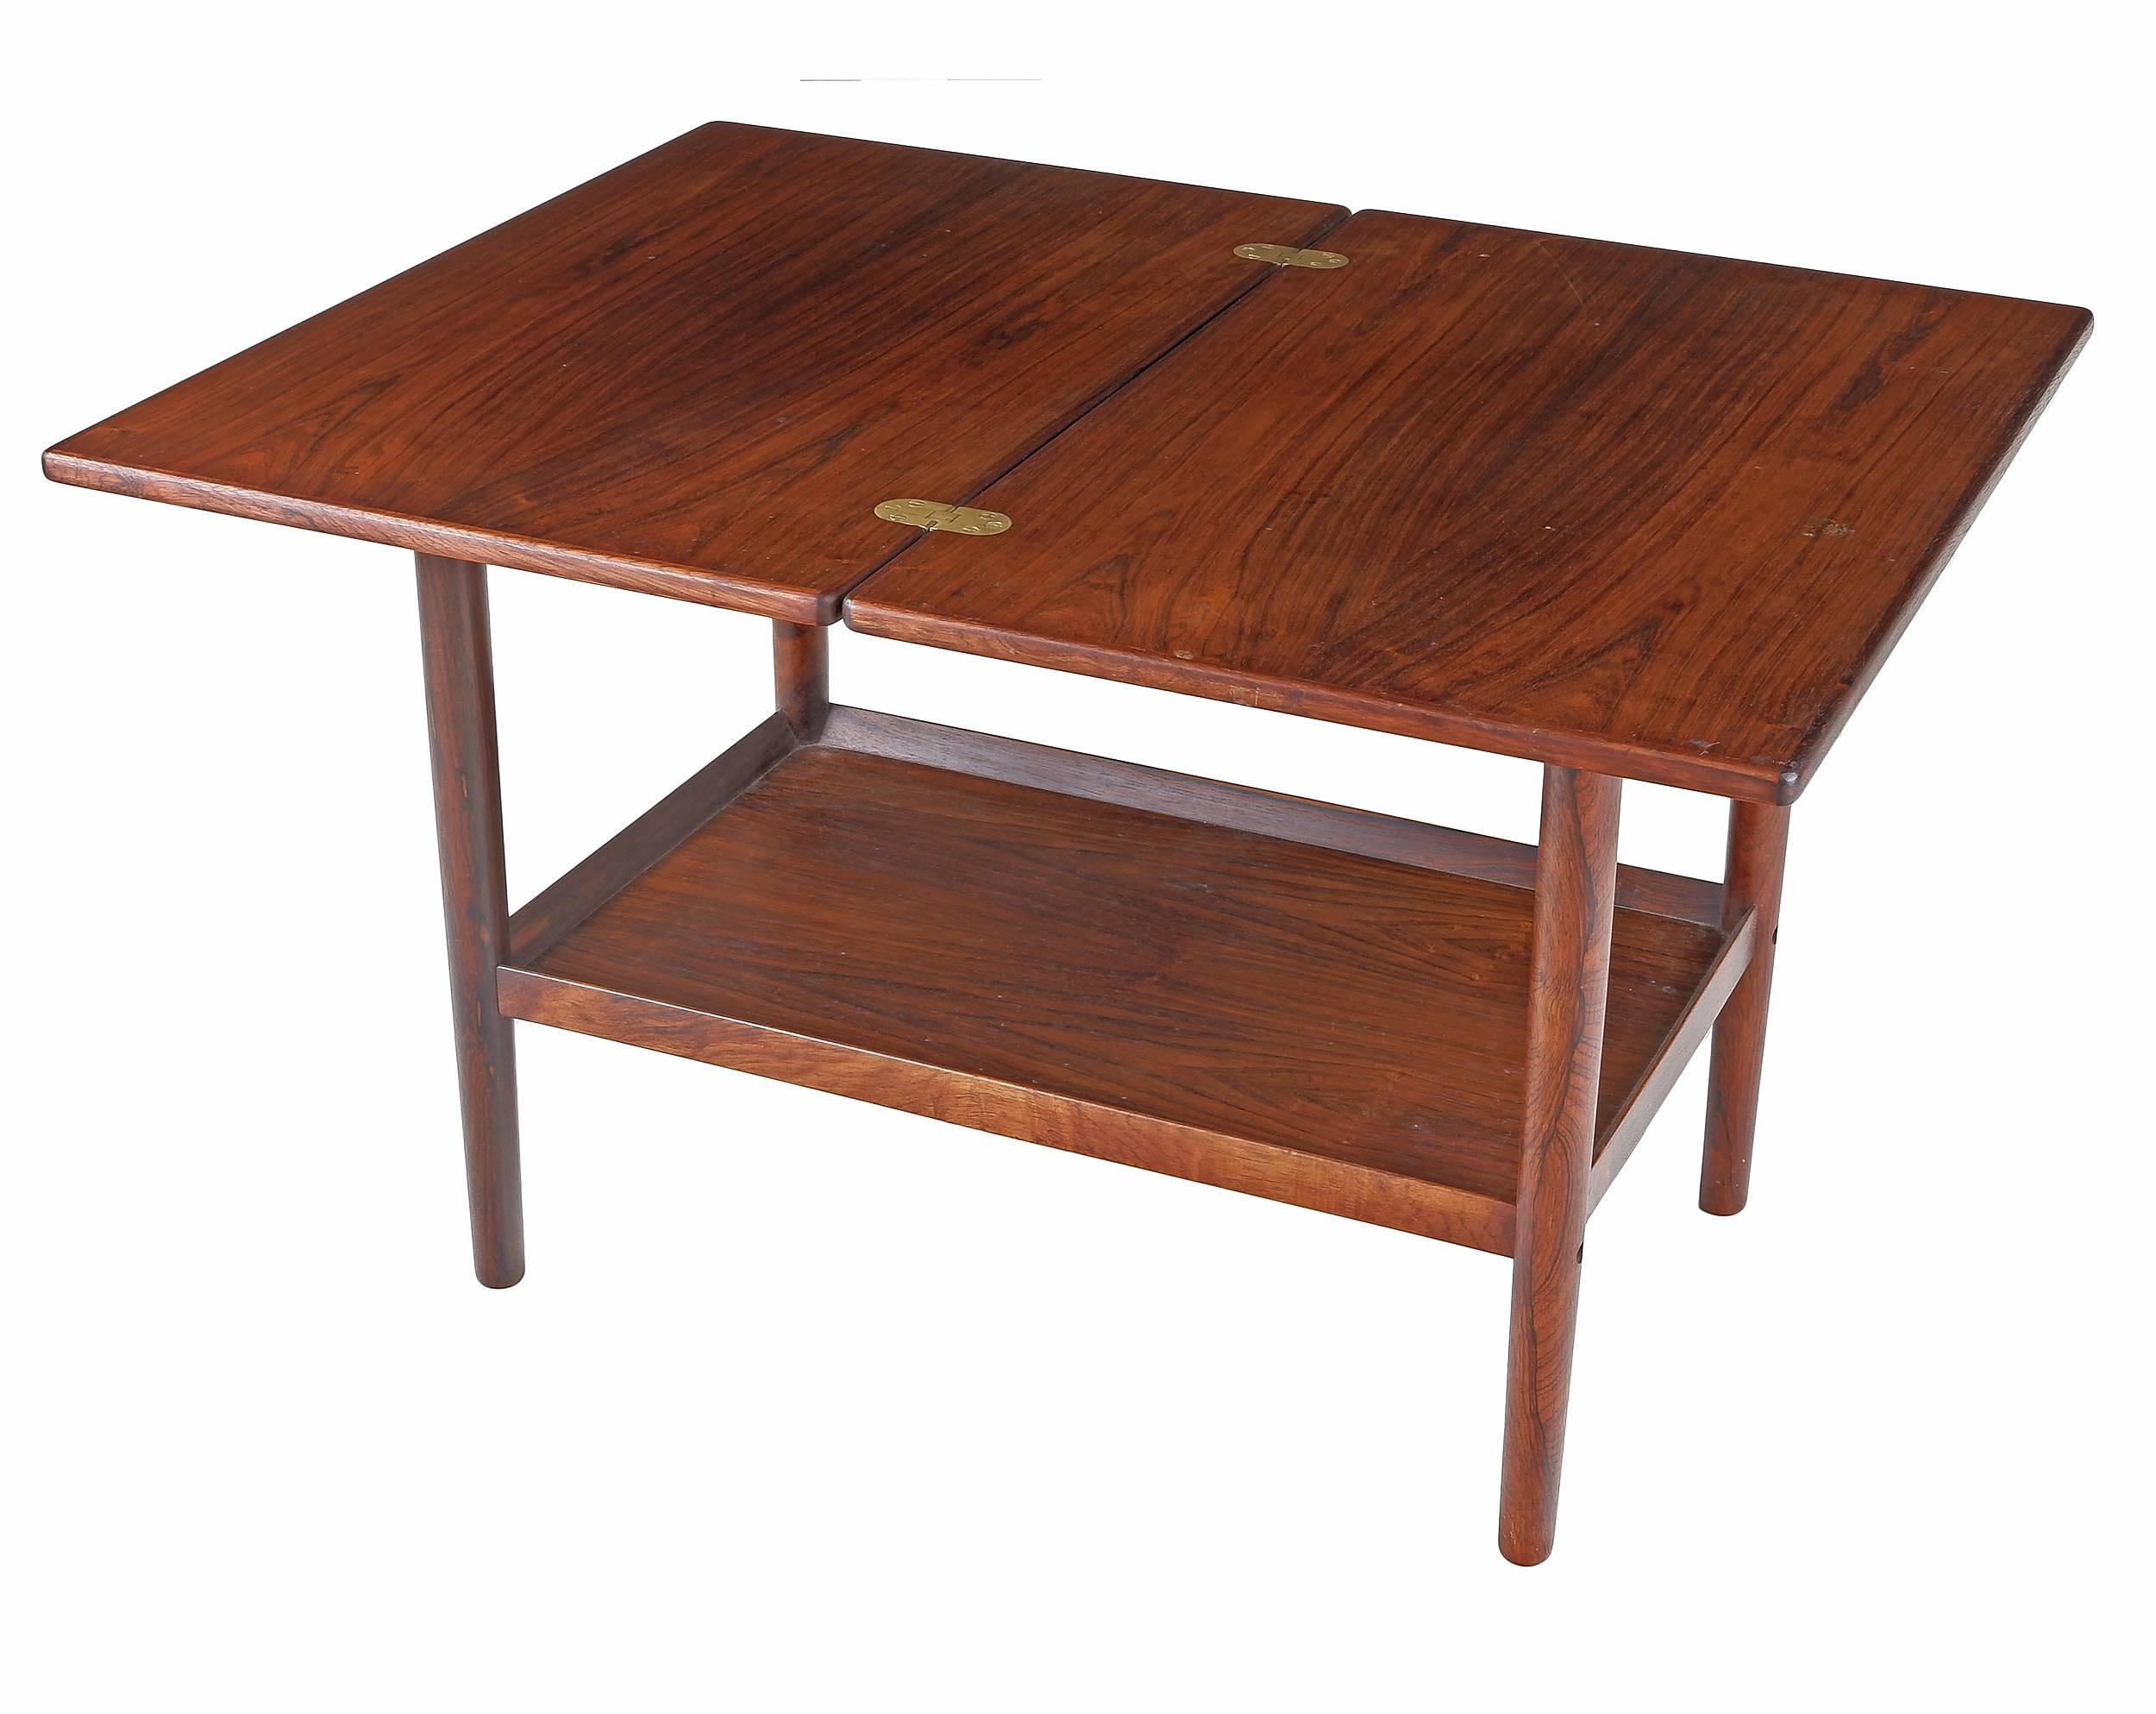 'Teak and Rosewood Folding Coffee Table Designed By Grete Jalk For Poul Jeppesen Denmark'